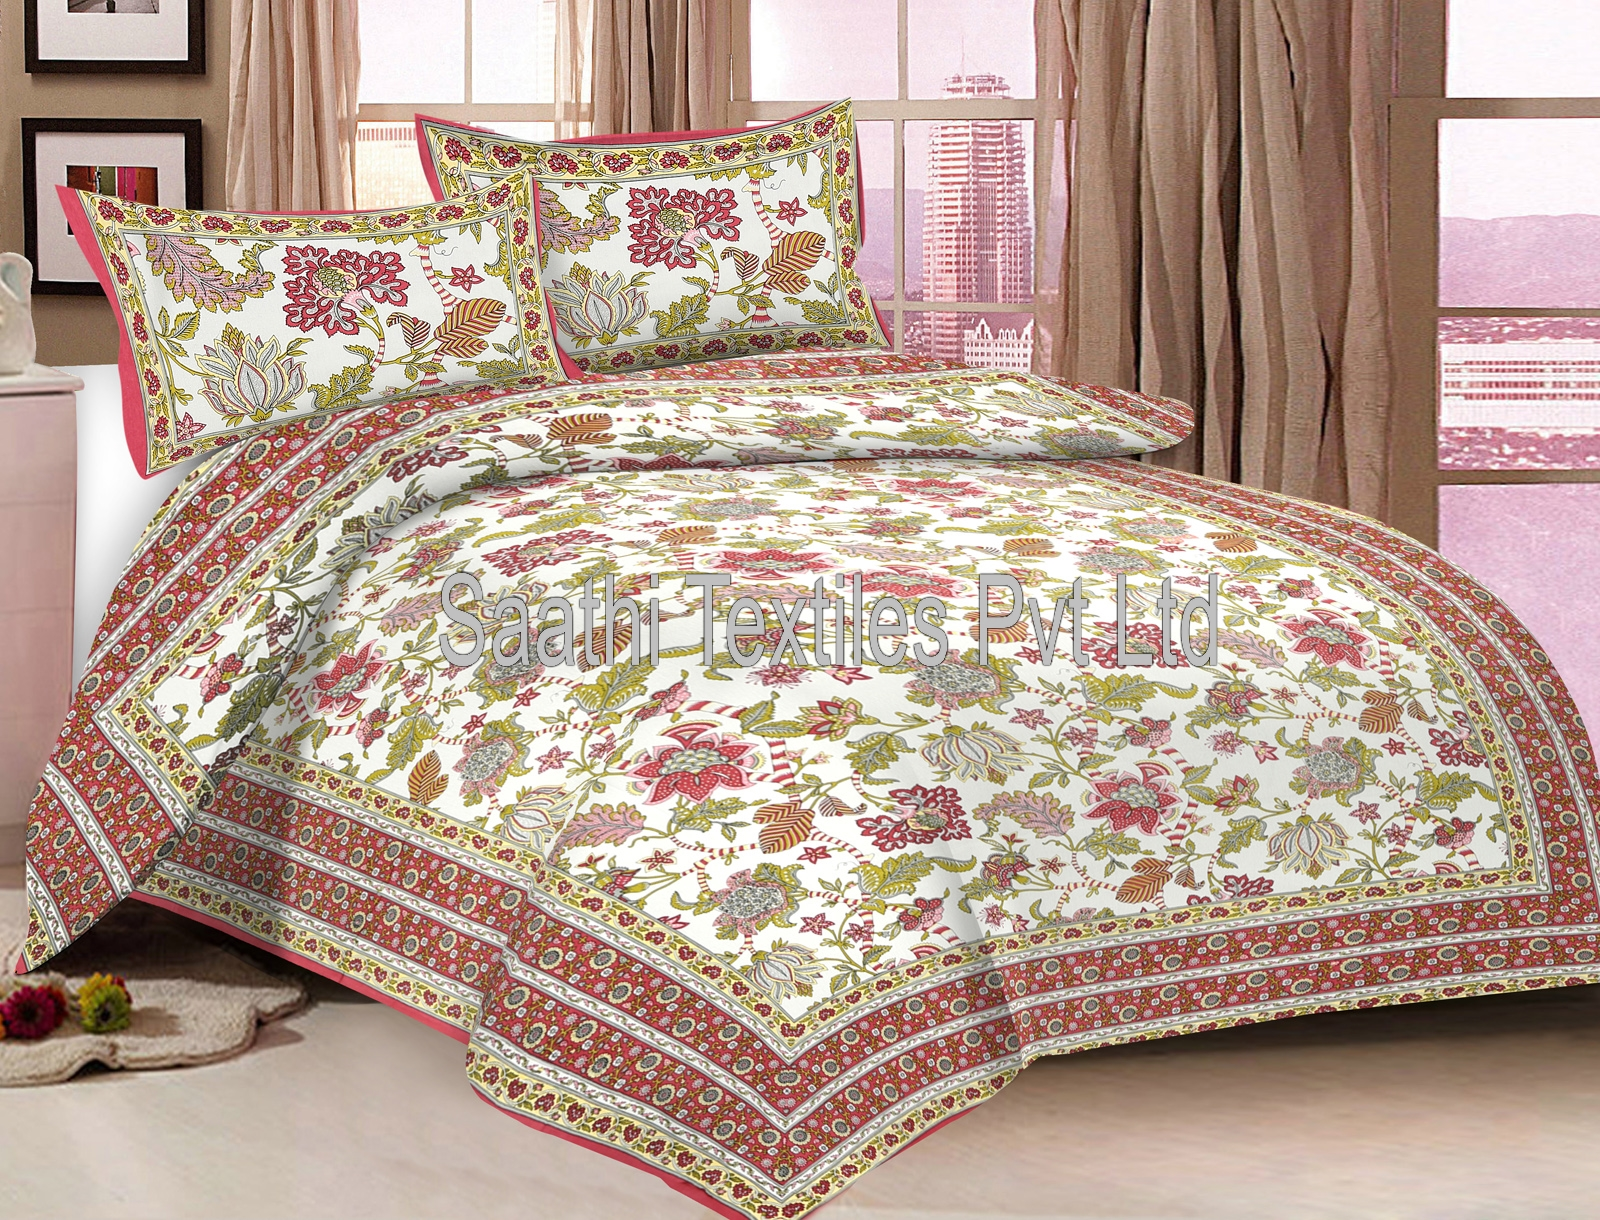 Printed Cotton Bed Sheets, Queen Size With Pillow Covers